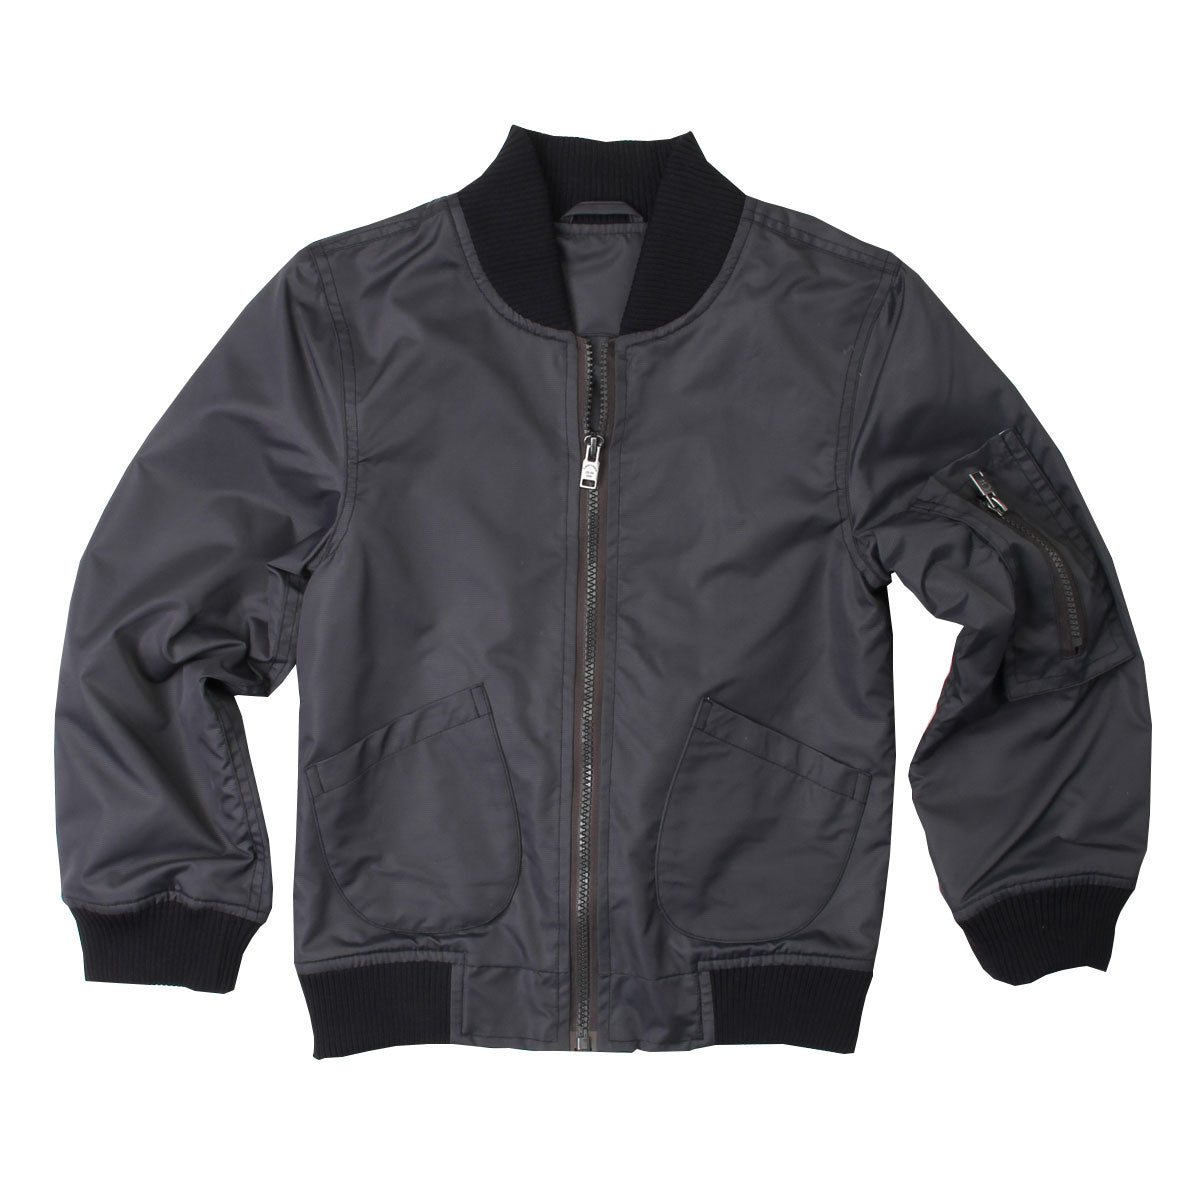 Boys' Nylon Jacket by Wes and Willy